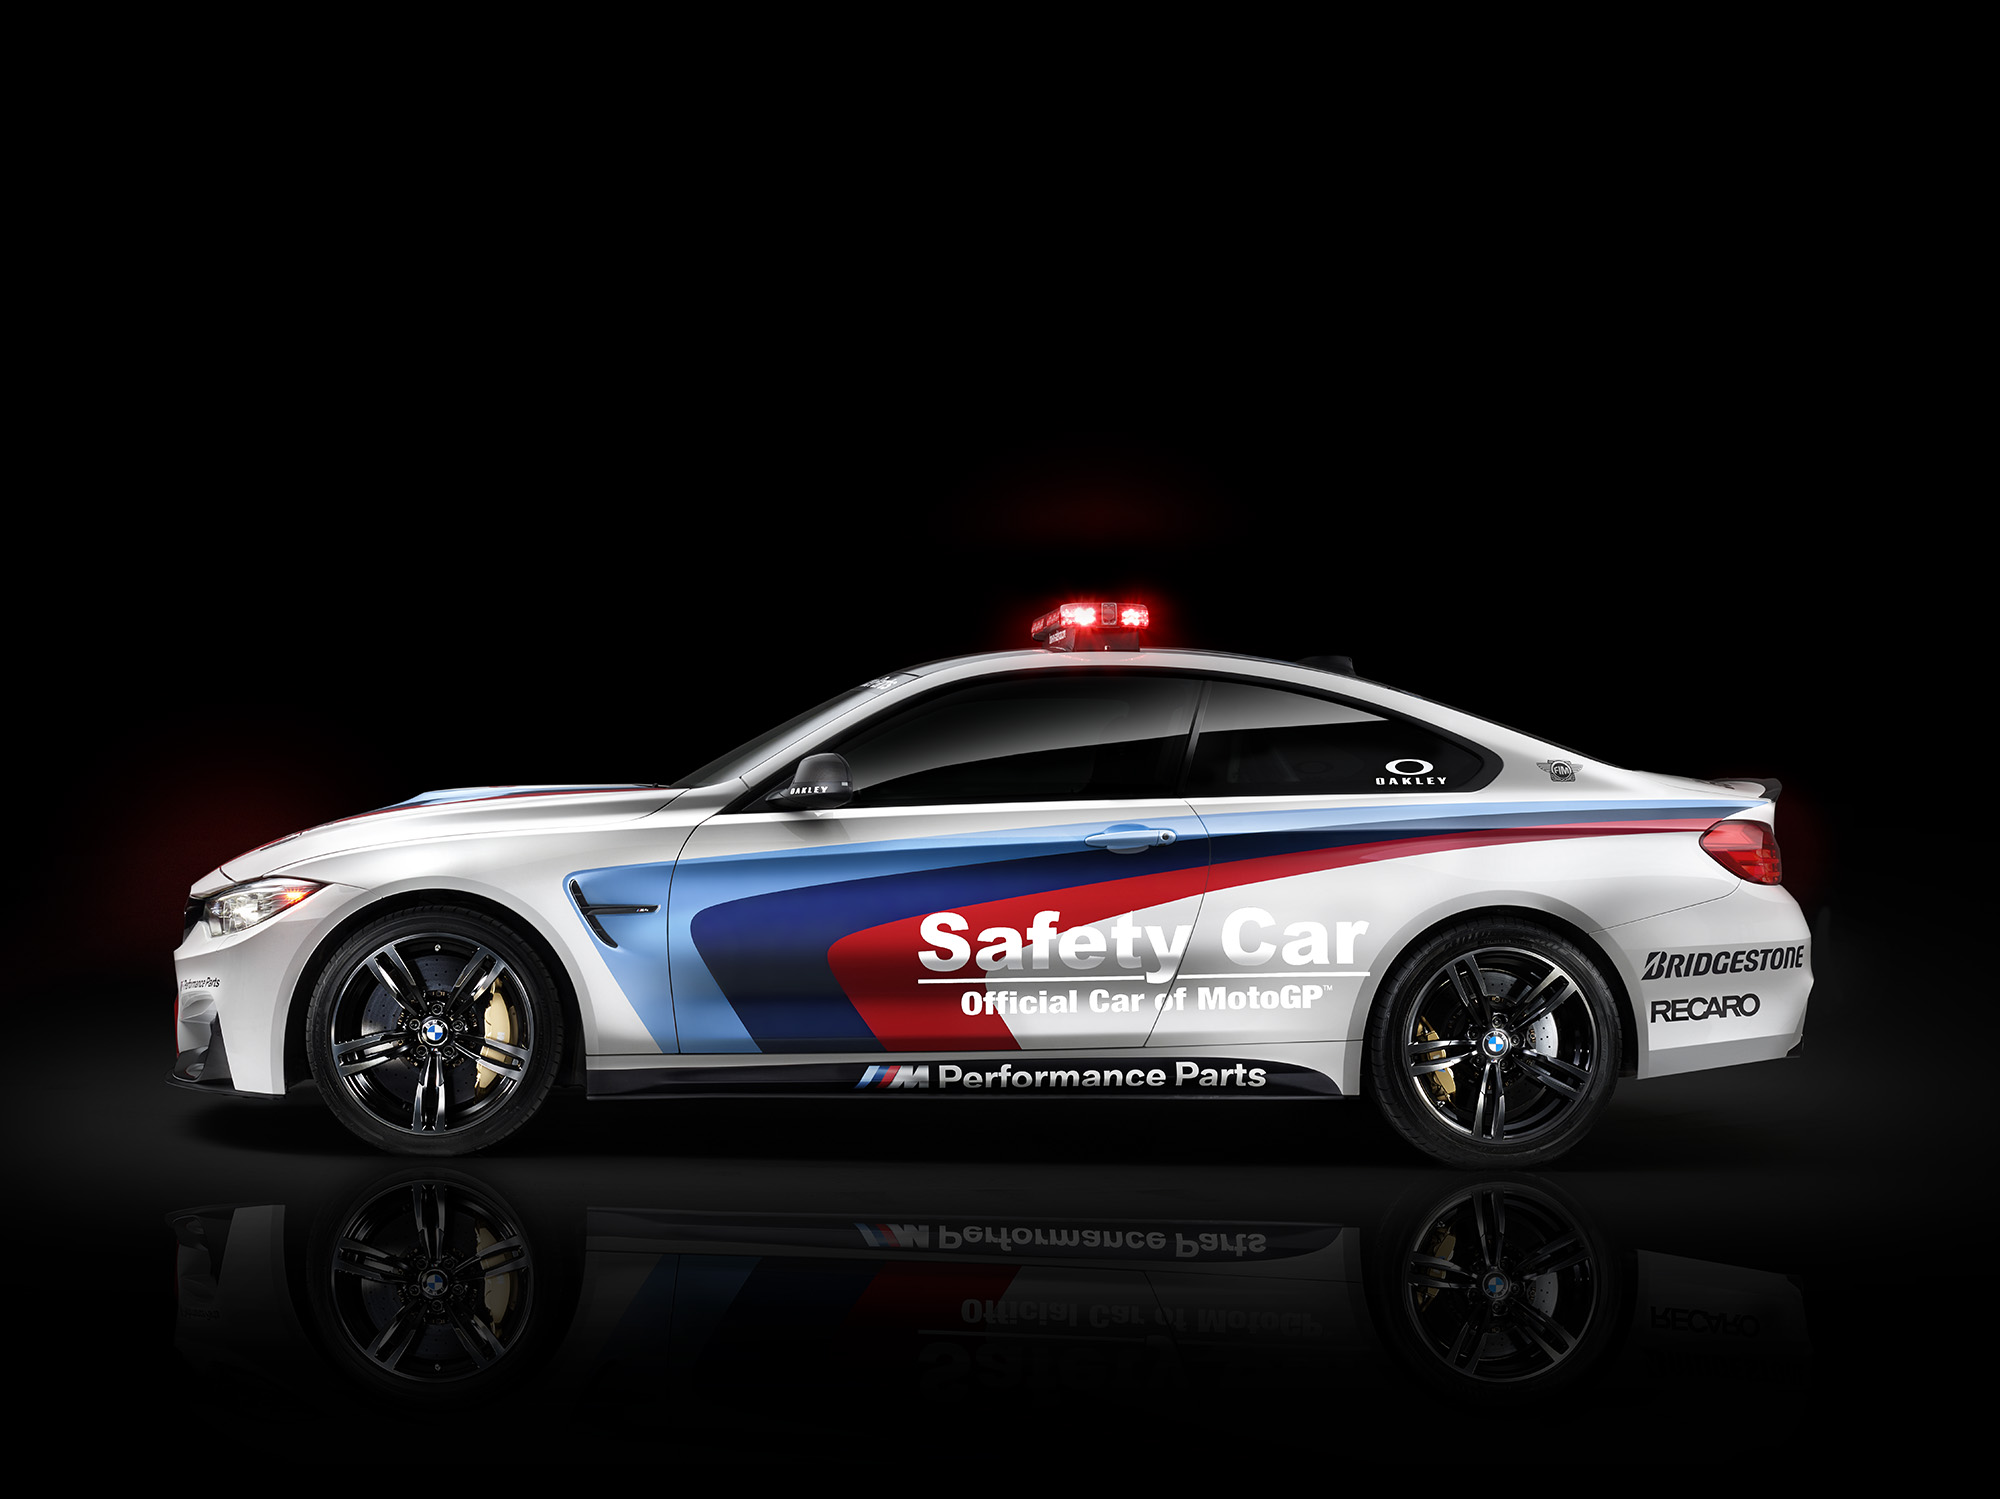 Bmw m4 is the official 2014 motogp safety car